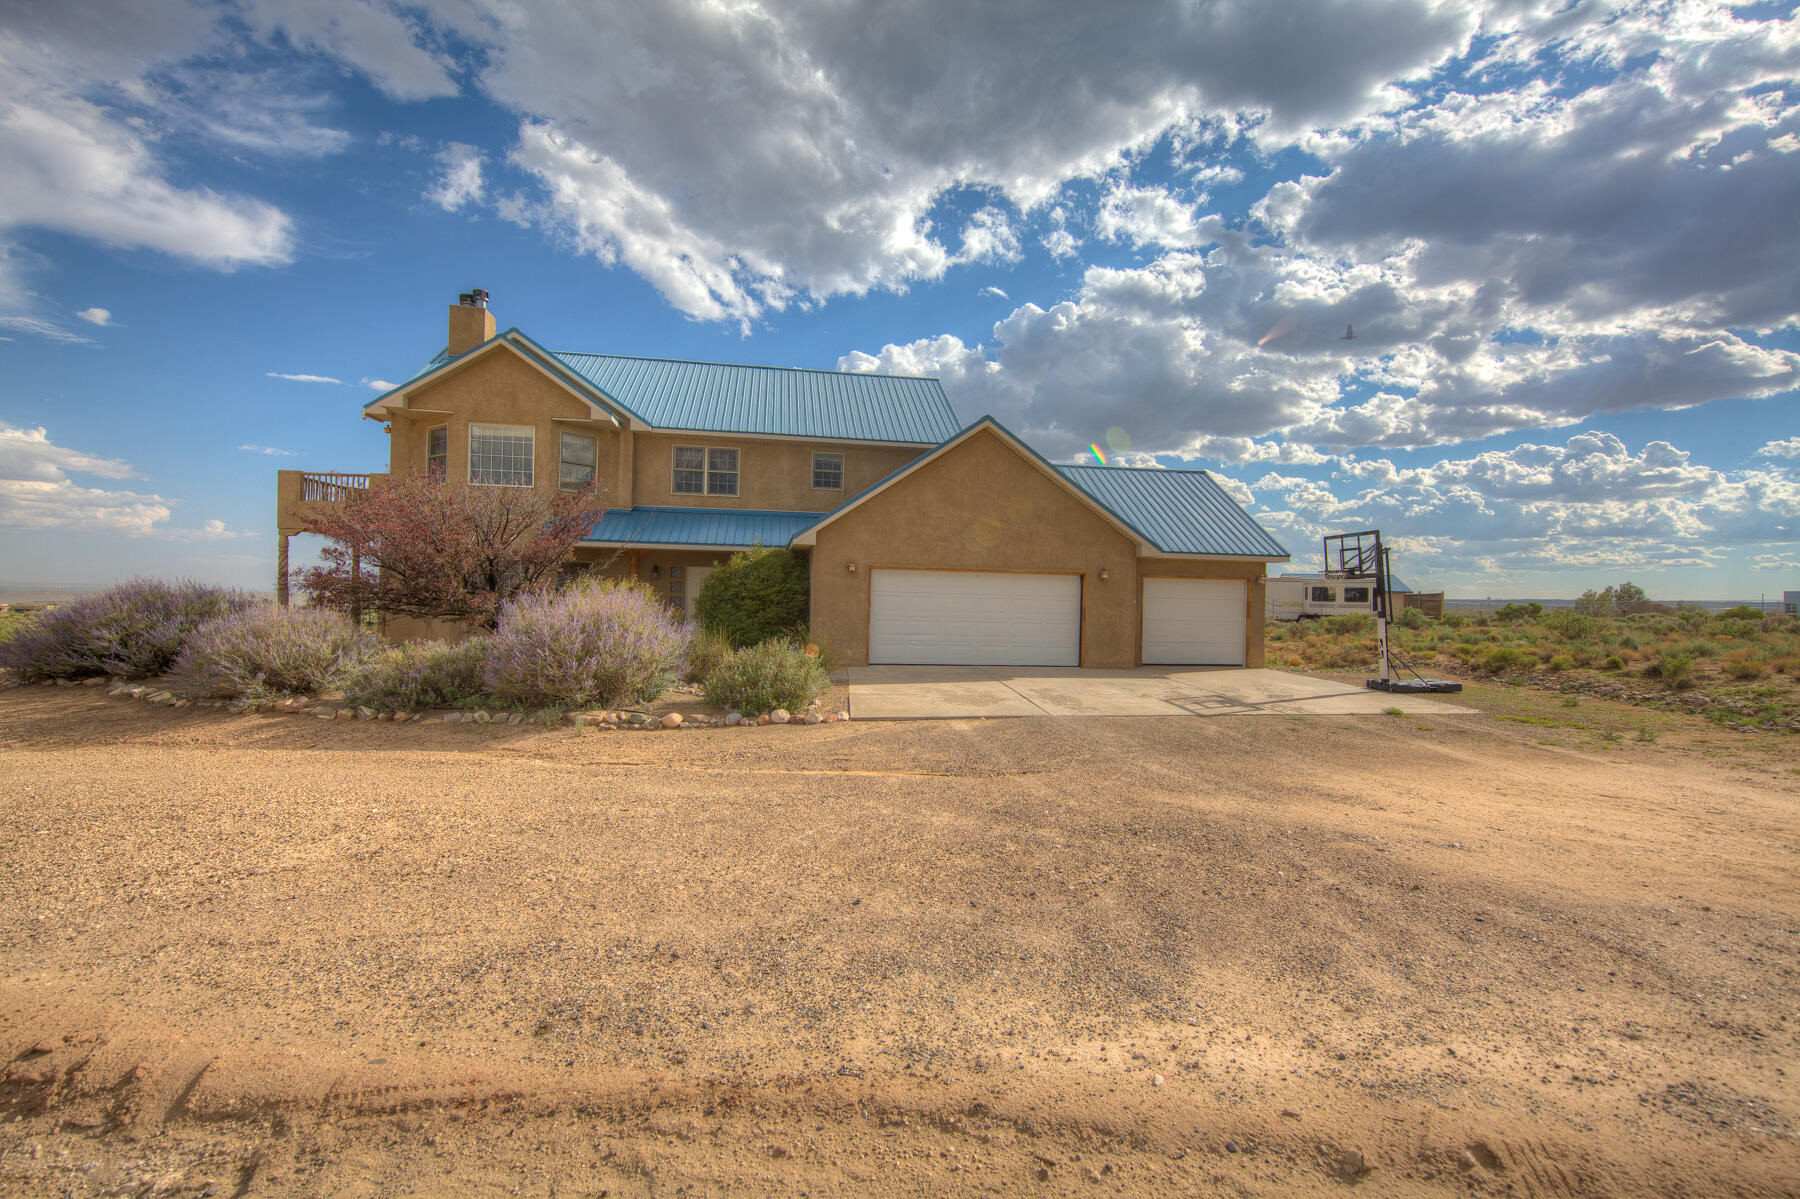 So hard to find in South Rio Rancho! This home features 5 true bedrooms, 2 living areas, 3 fireplaces, and a 3 car garage, all on a 1 acre lot with plenty of room for your extra vehicles or toys. You will also enjoy incredible mountain and city views from both levels. Lots of tile and wood flooring on the first floor, and stainless steel appliances with plenty of cabinet space in the expansive kitchen. The master bed has a cozy fireplace, a relaxing East facing balcony, and the master bath has dual sinks with a jetted tub and separate shower. Ceiling fans are in every room, and there is cool refrigerated air.